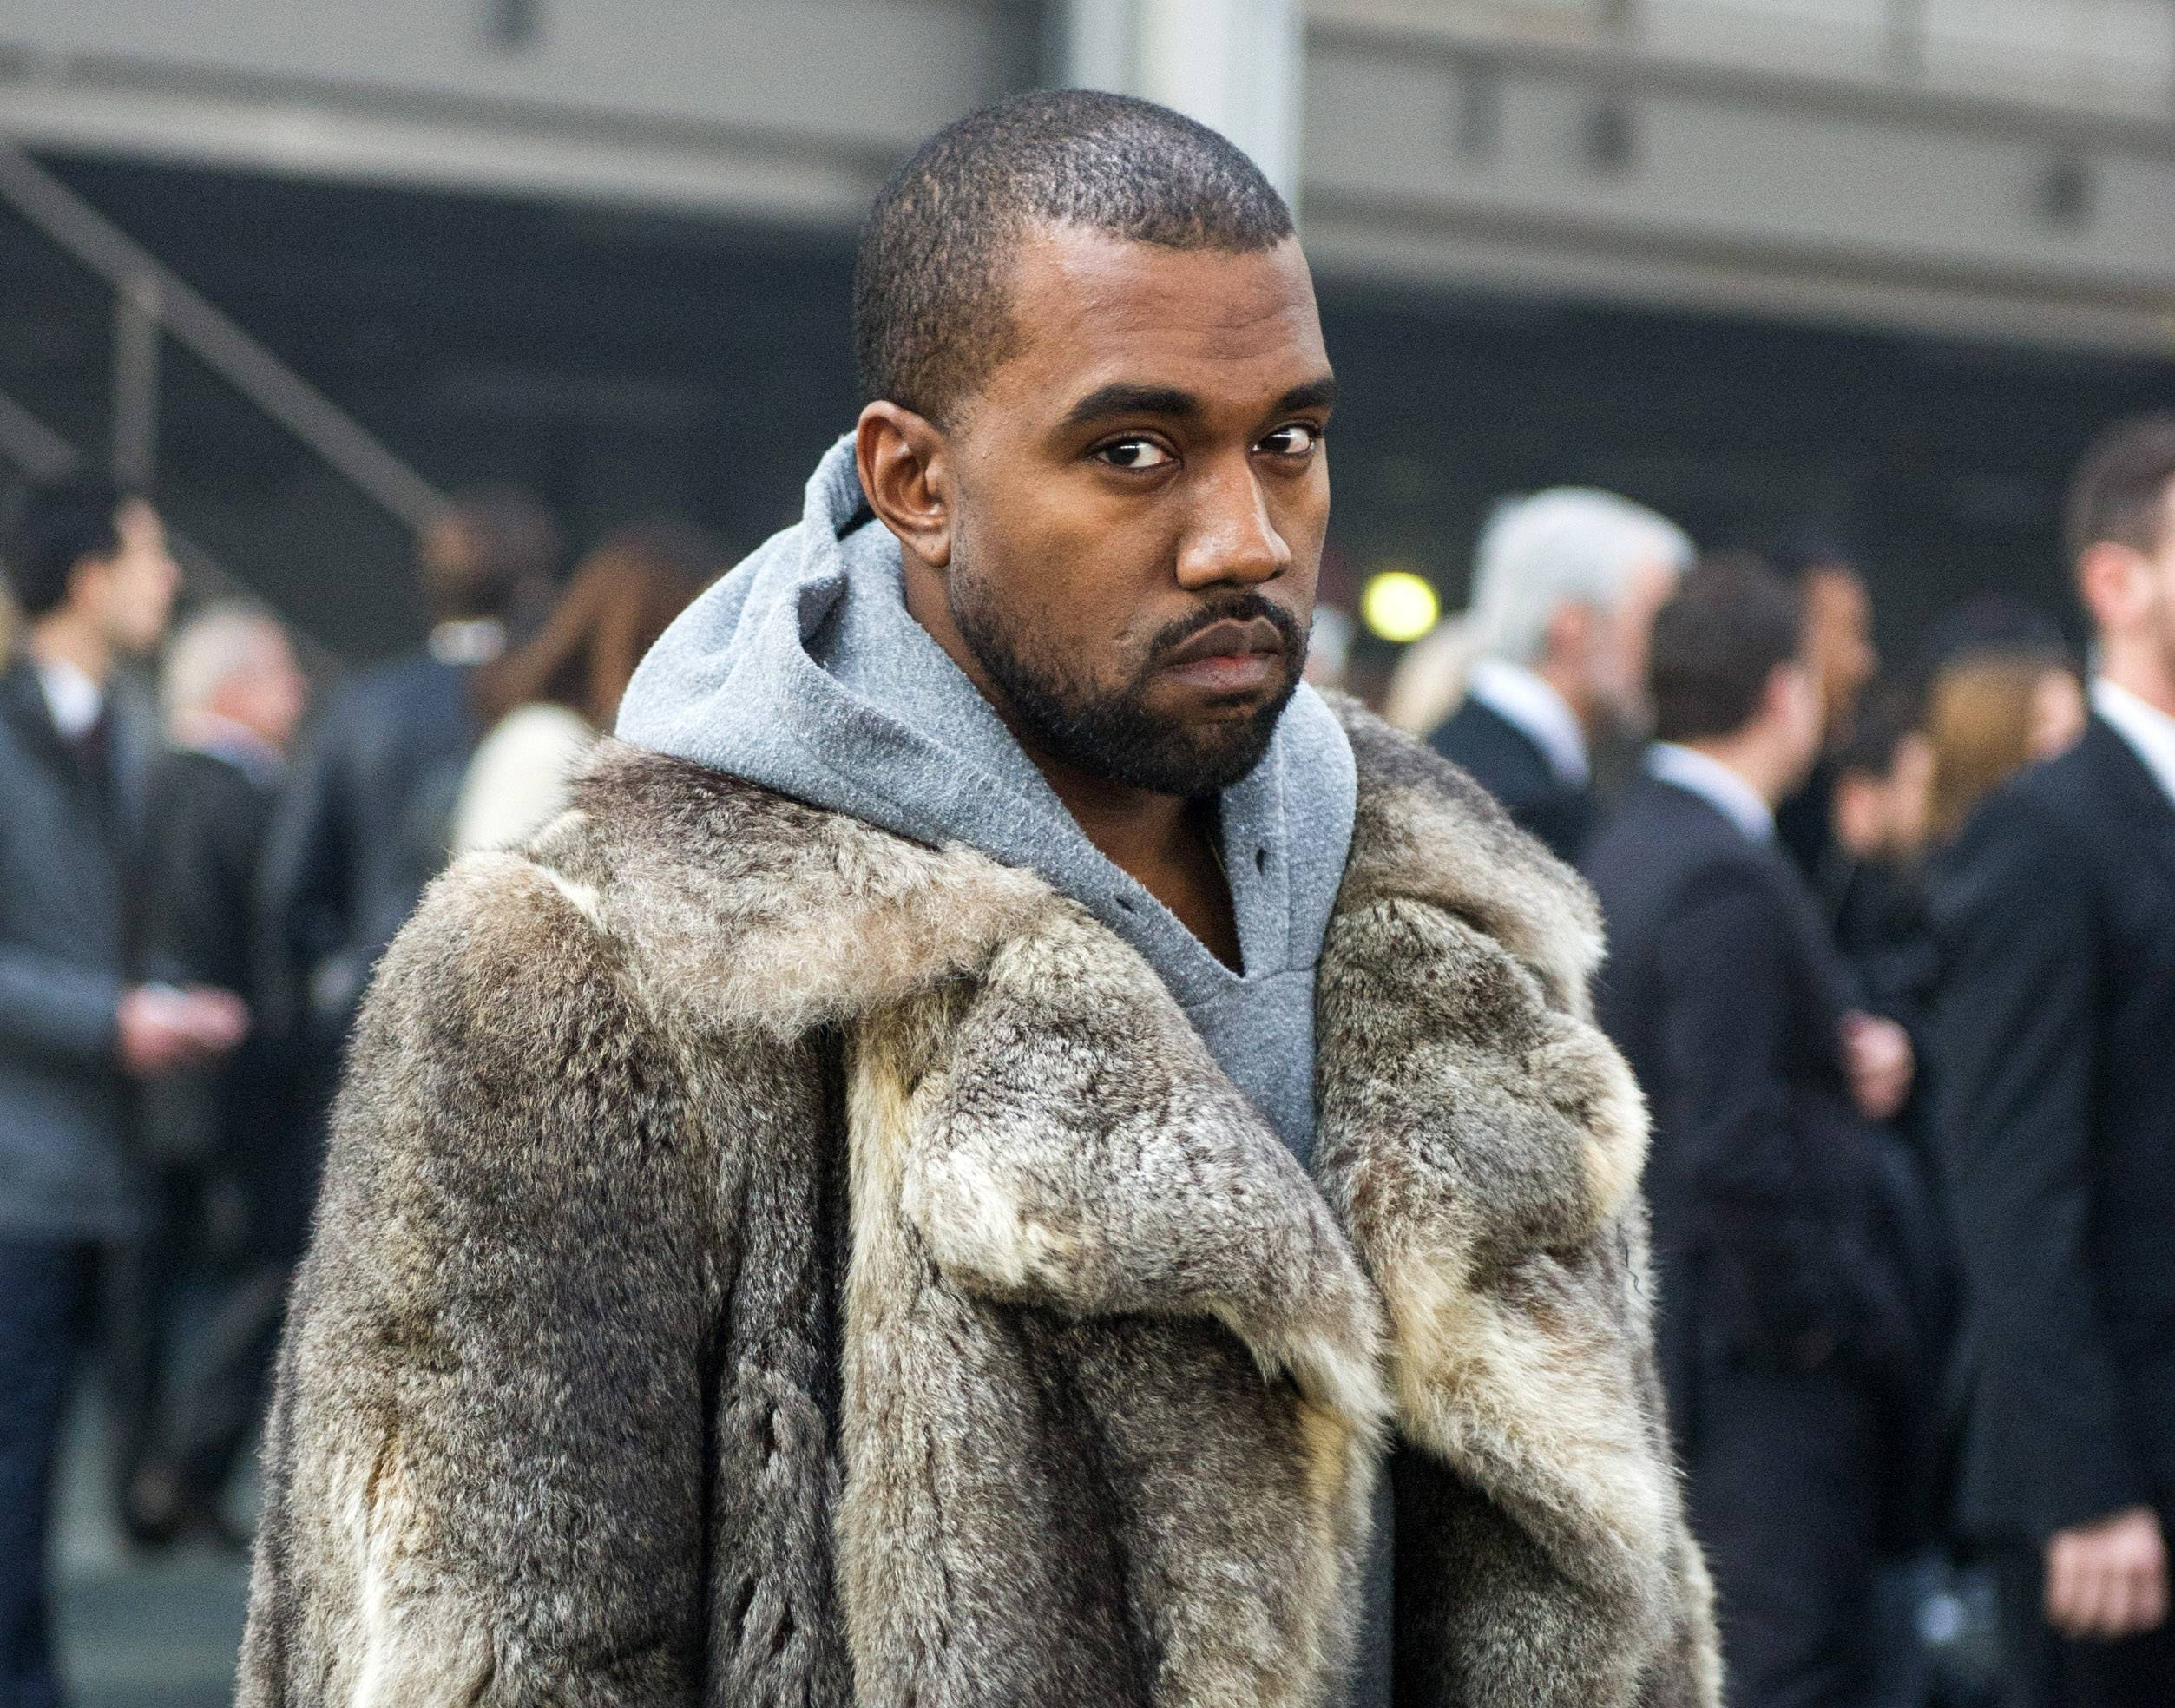 Kanye West is headed to Austin, Texas, for South By Southwest, which has slipped into hyperdrive as the music portion of the annual conference and festival opens this week.